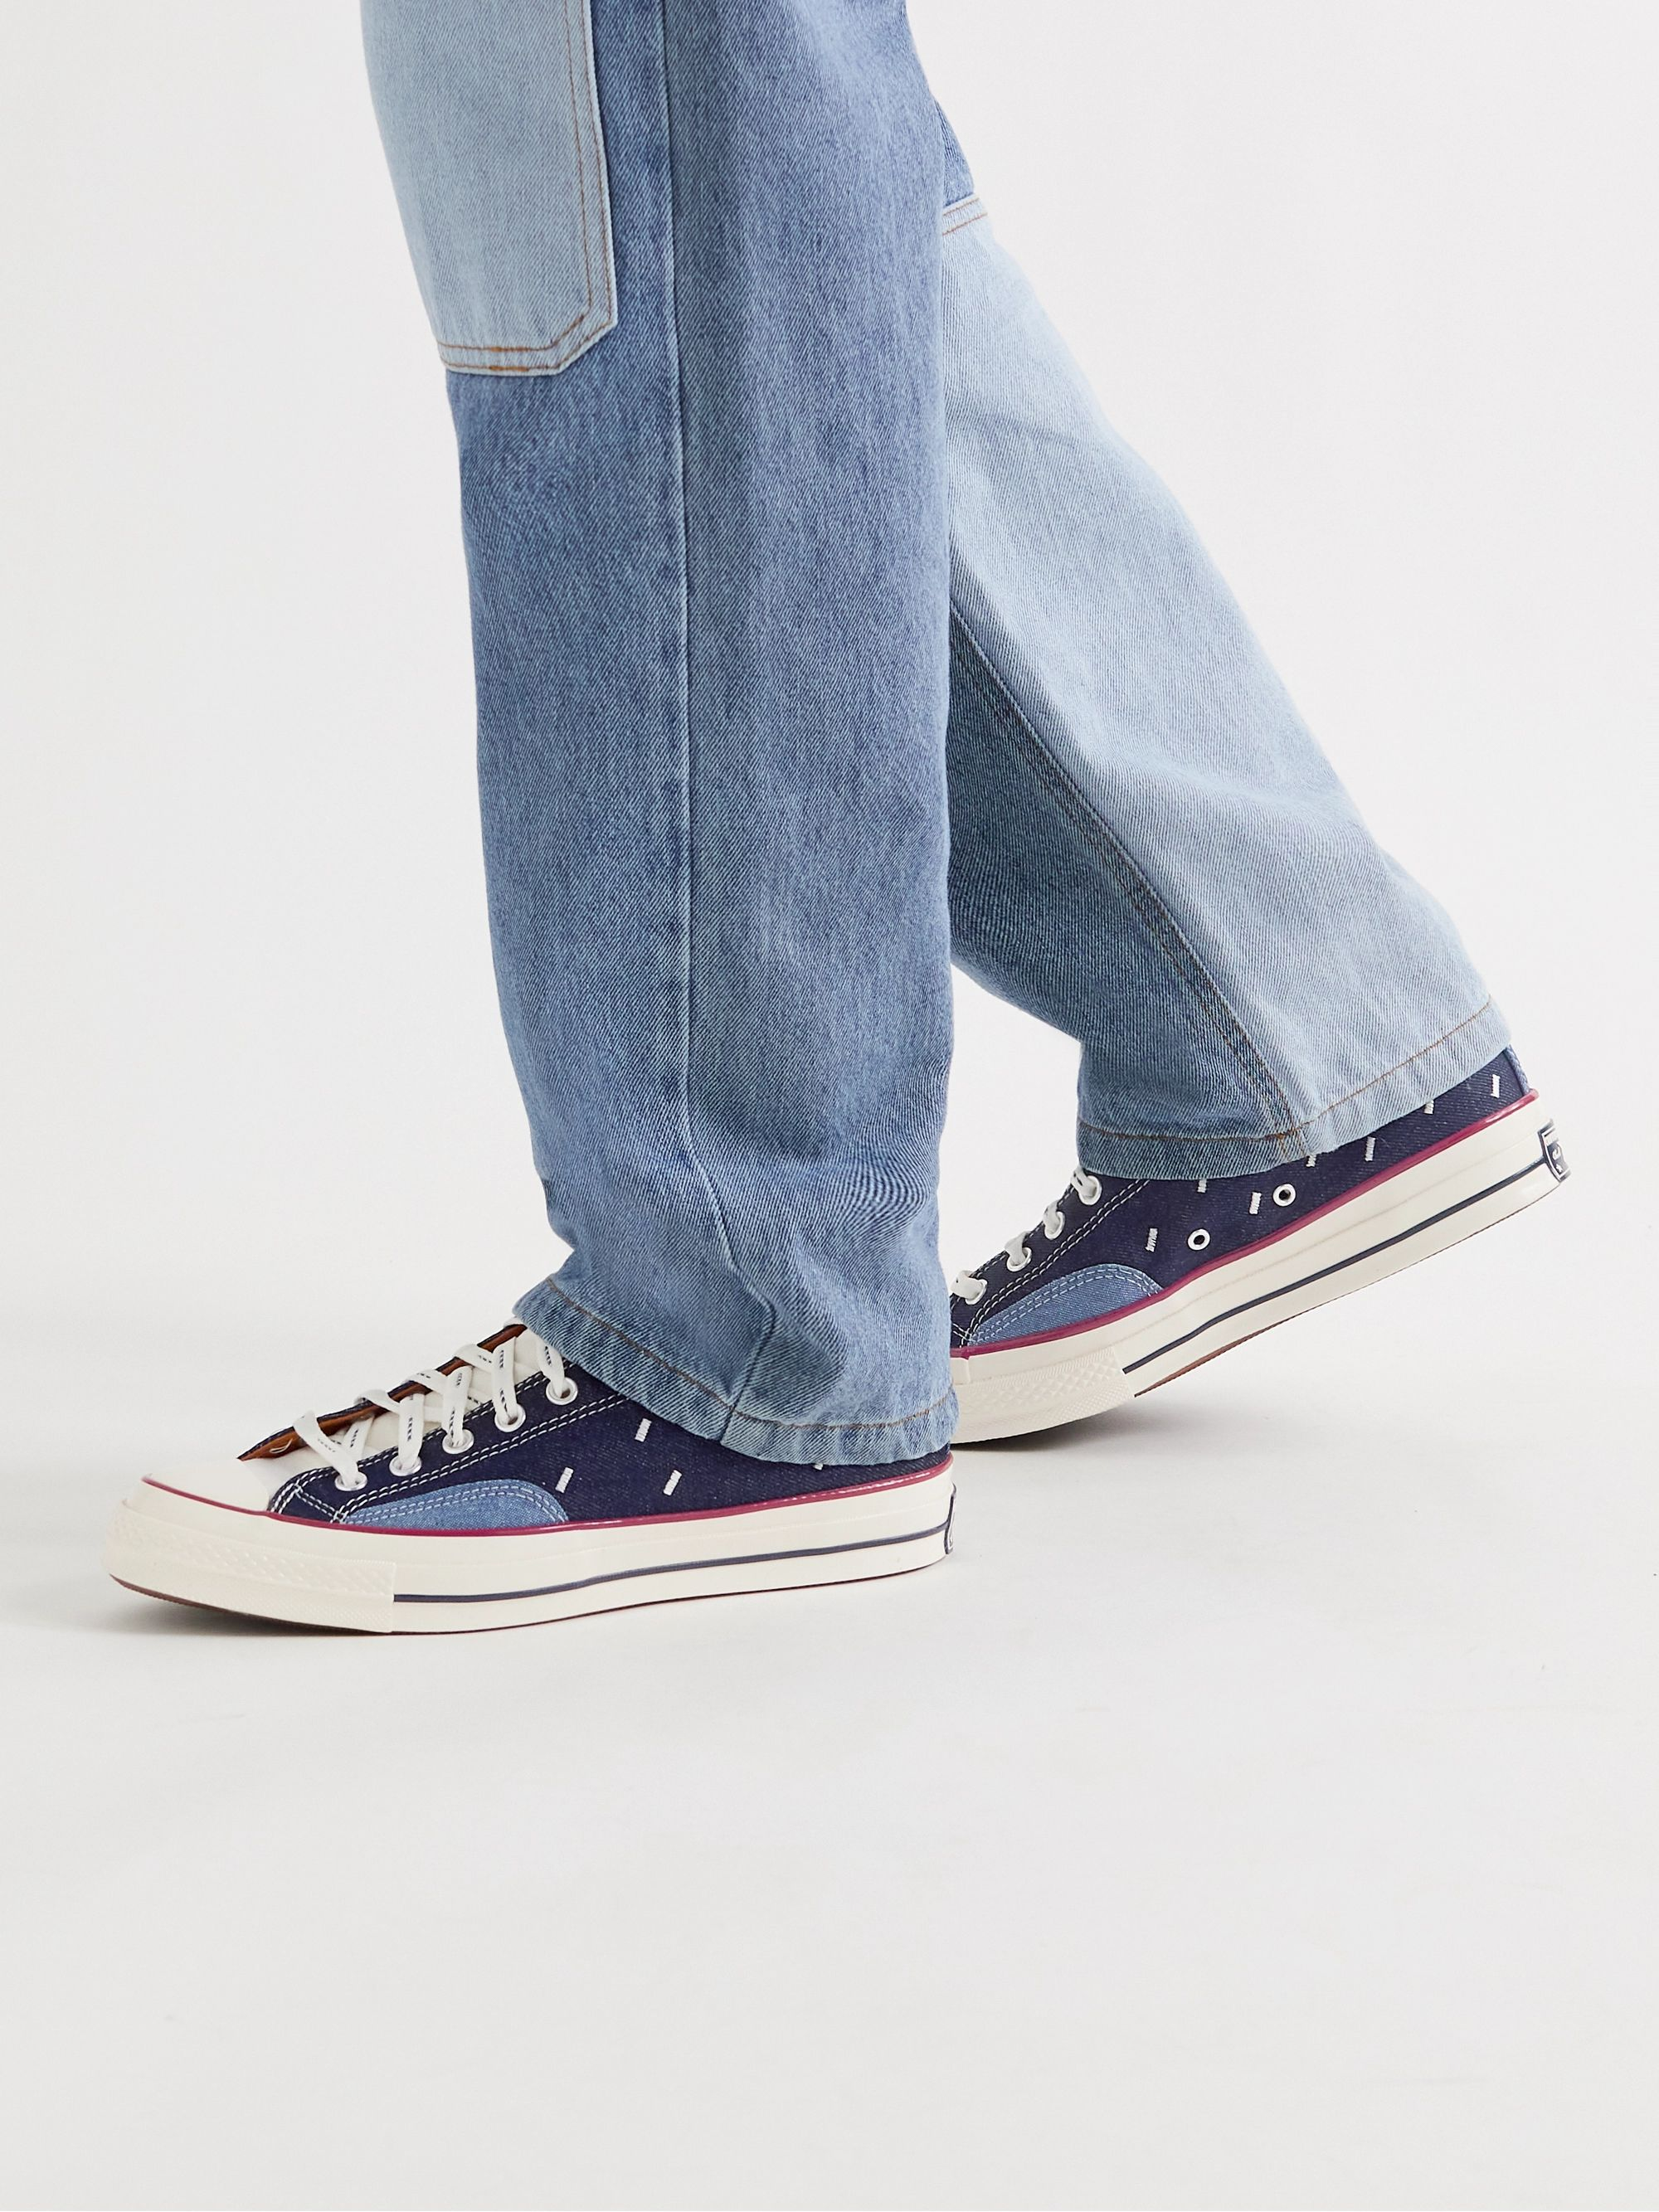 CONVERSE Chuck 70 OX Embroidered Denim and Canvas Sneakers